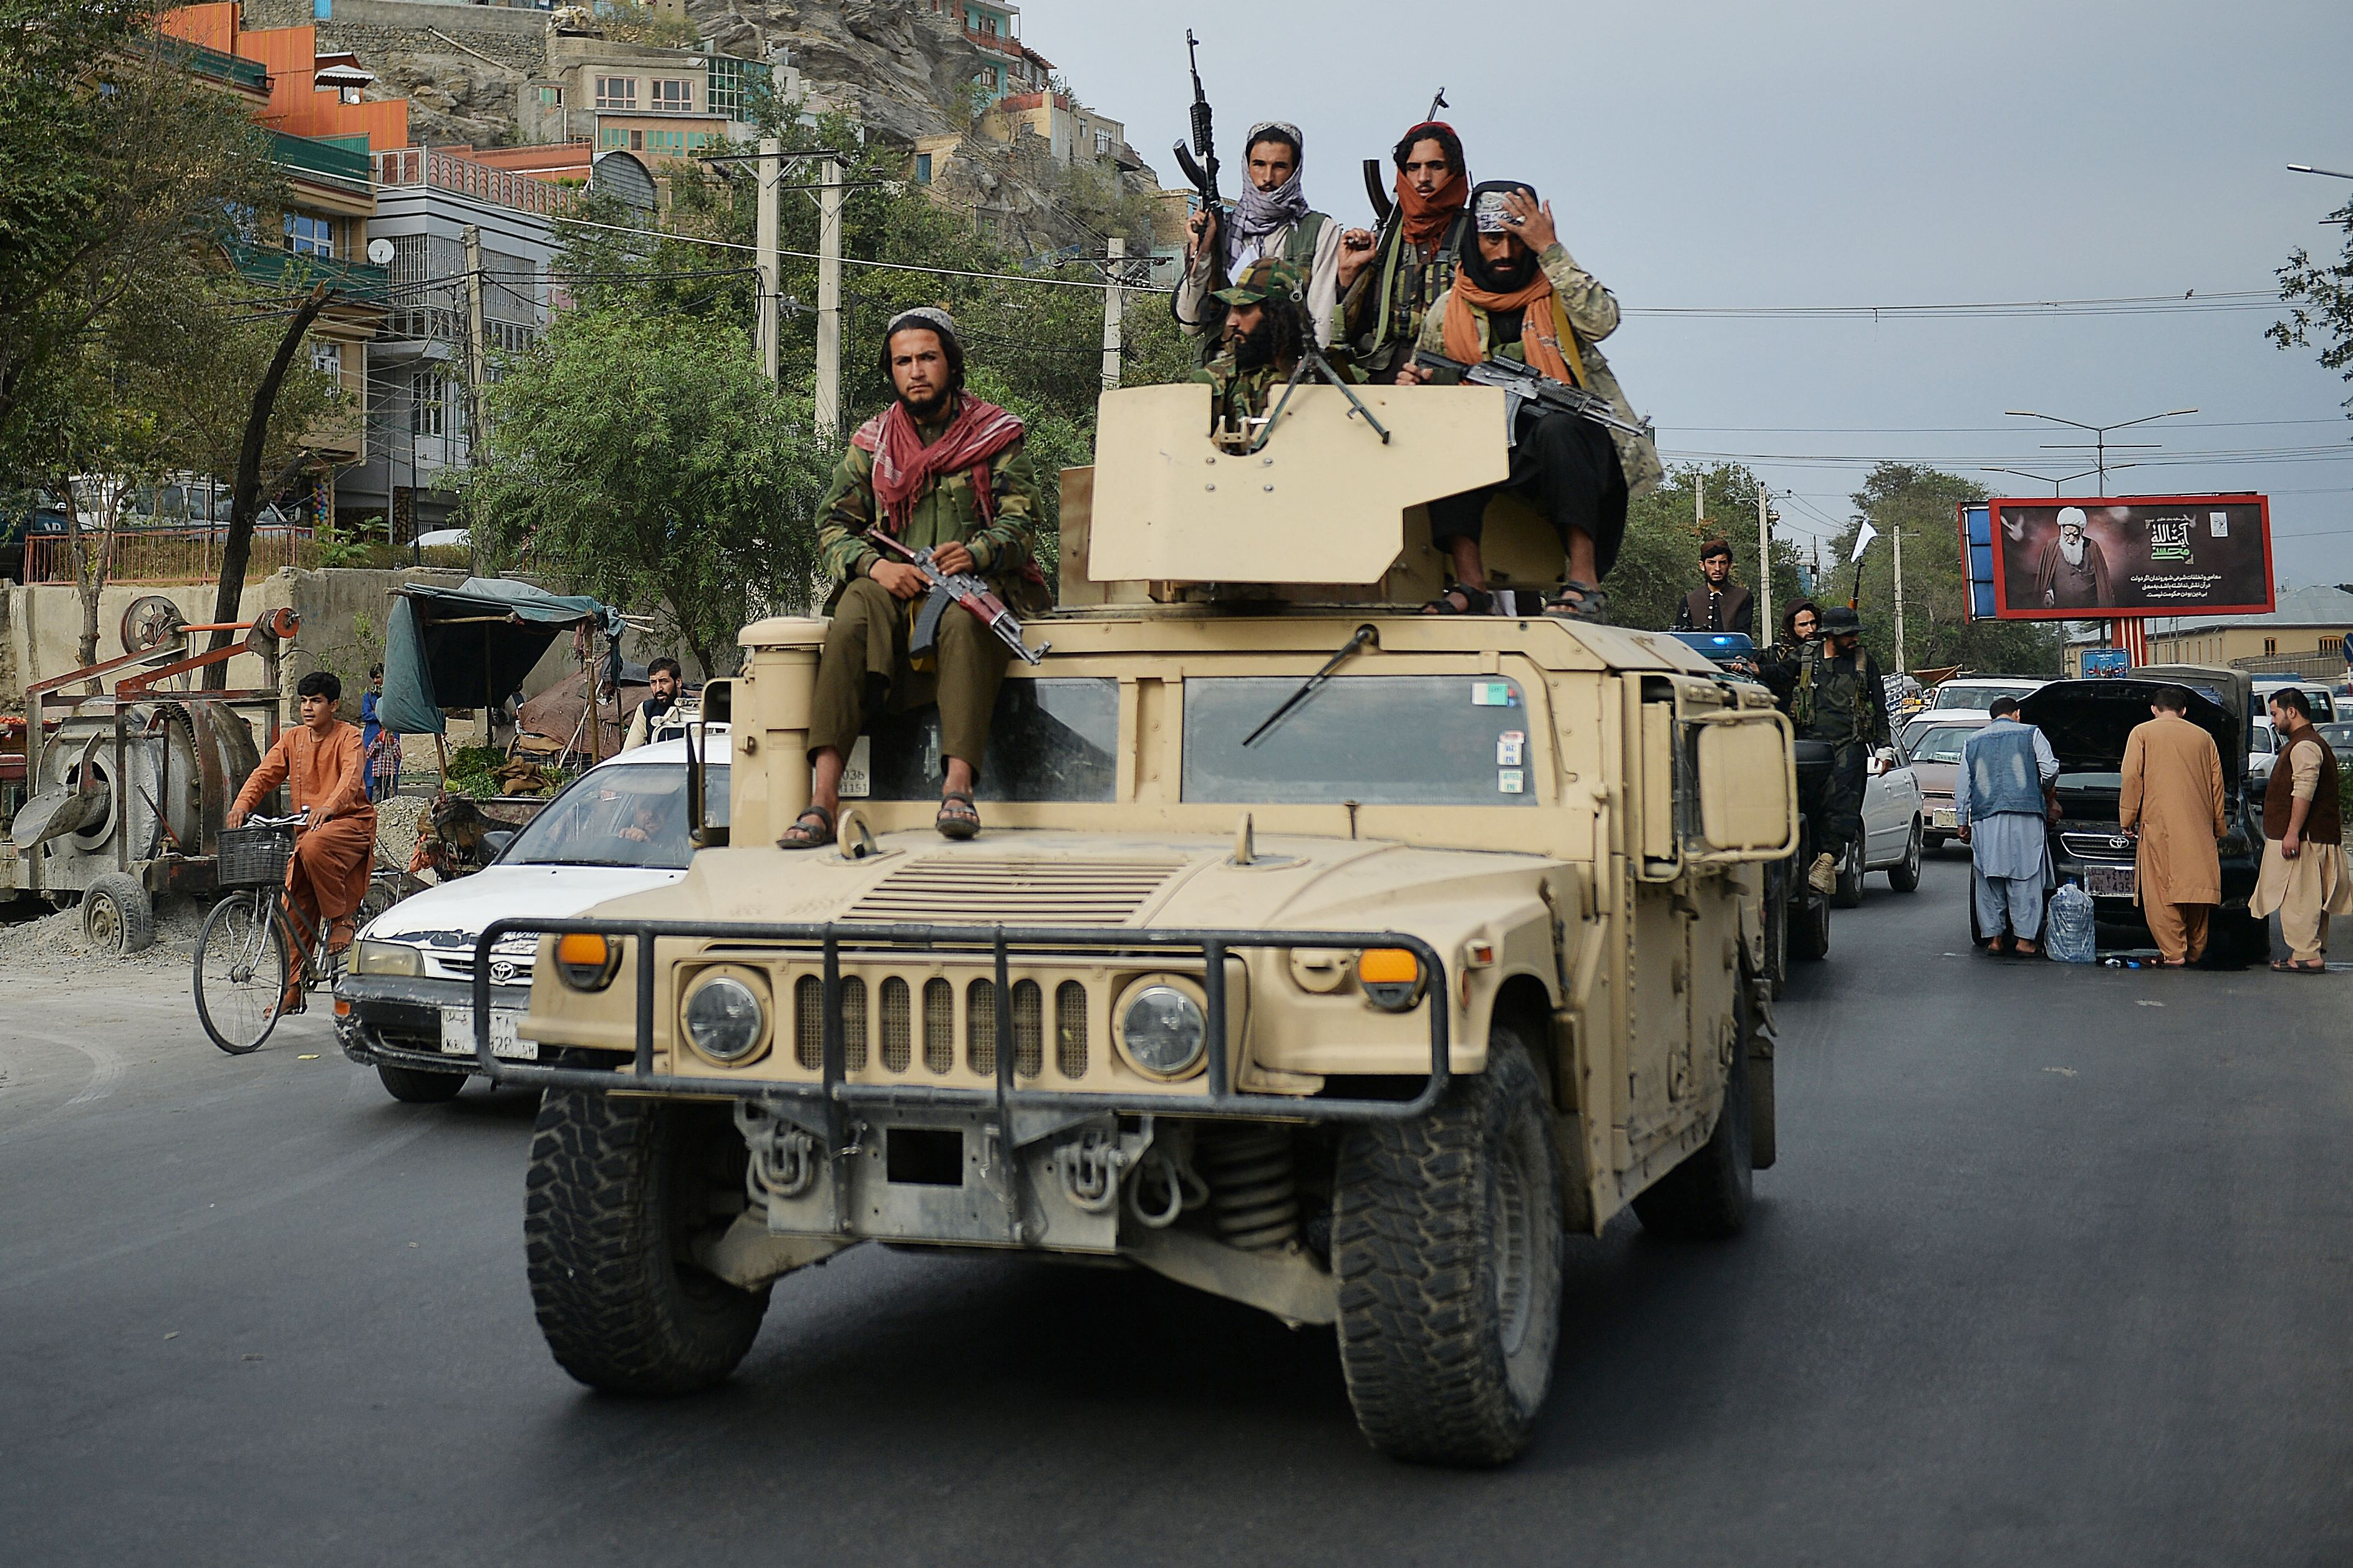 Taliban fighters atop a Humvee vehicle take part in a rally in Kabul  as they celebrate after the US pulled all its troops out of the country. (Photo by HOSHANG HASHIMI/AFP via Getty Images)